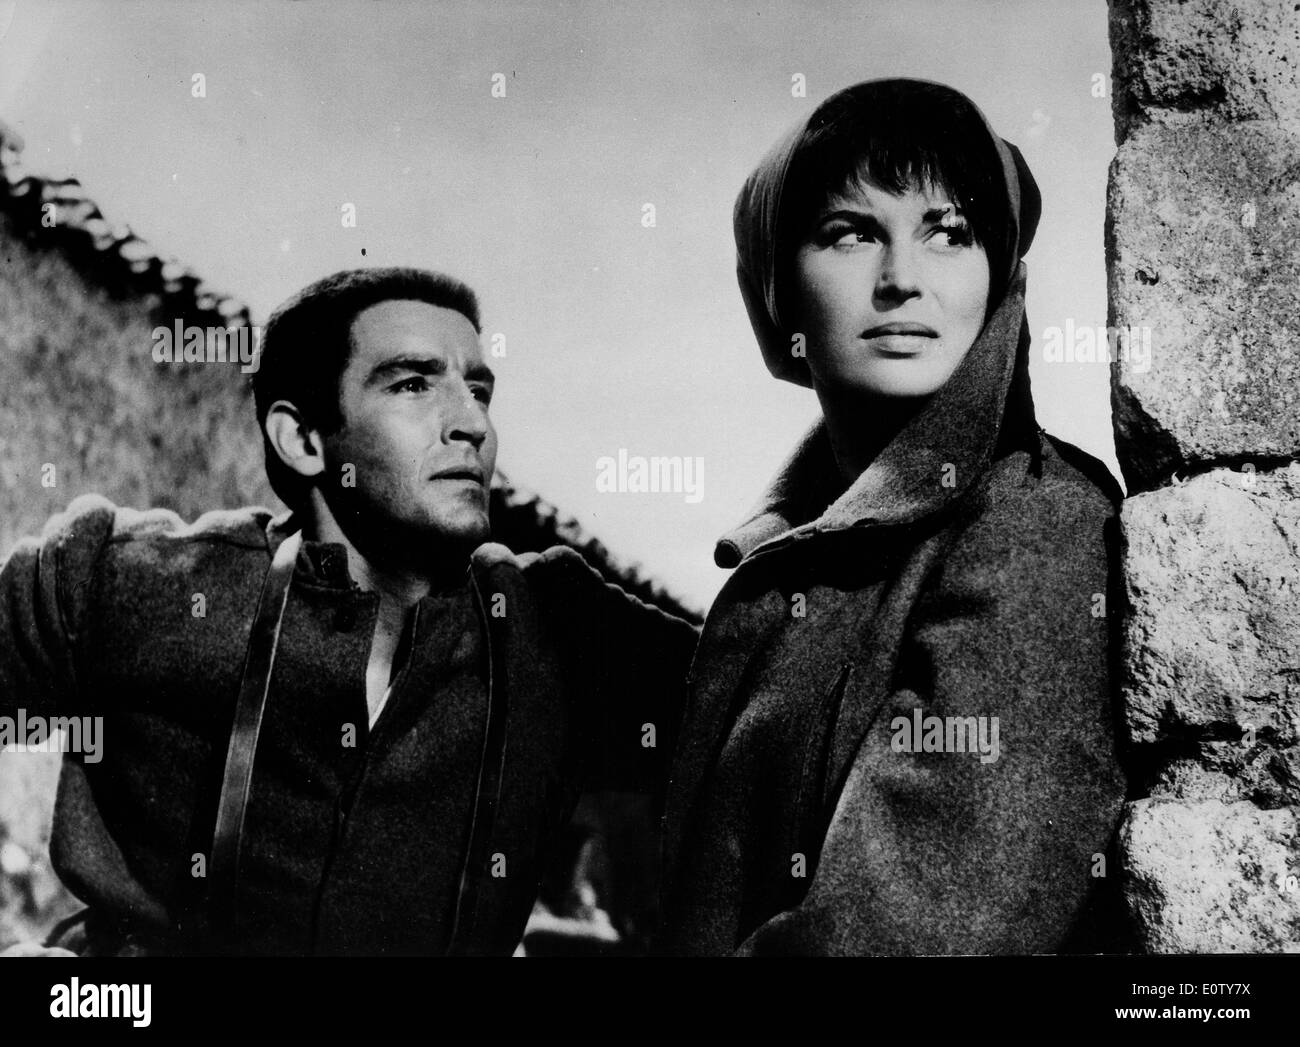 Actress Silvana Mangano in a scene from a film - Stock Image